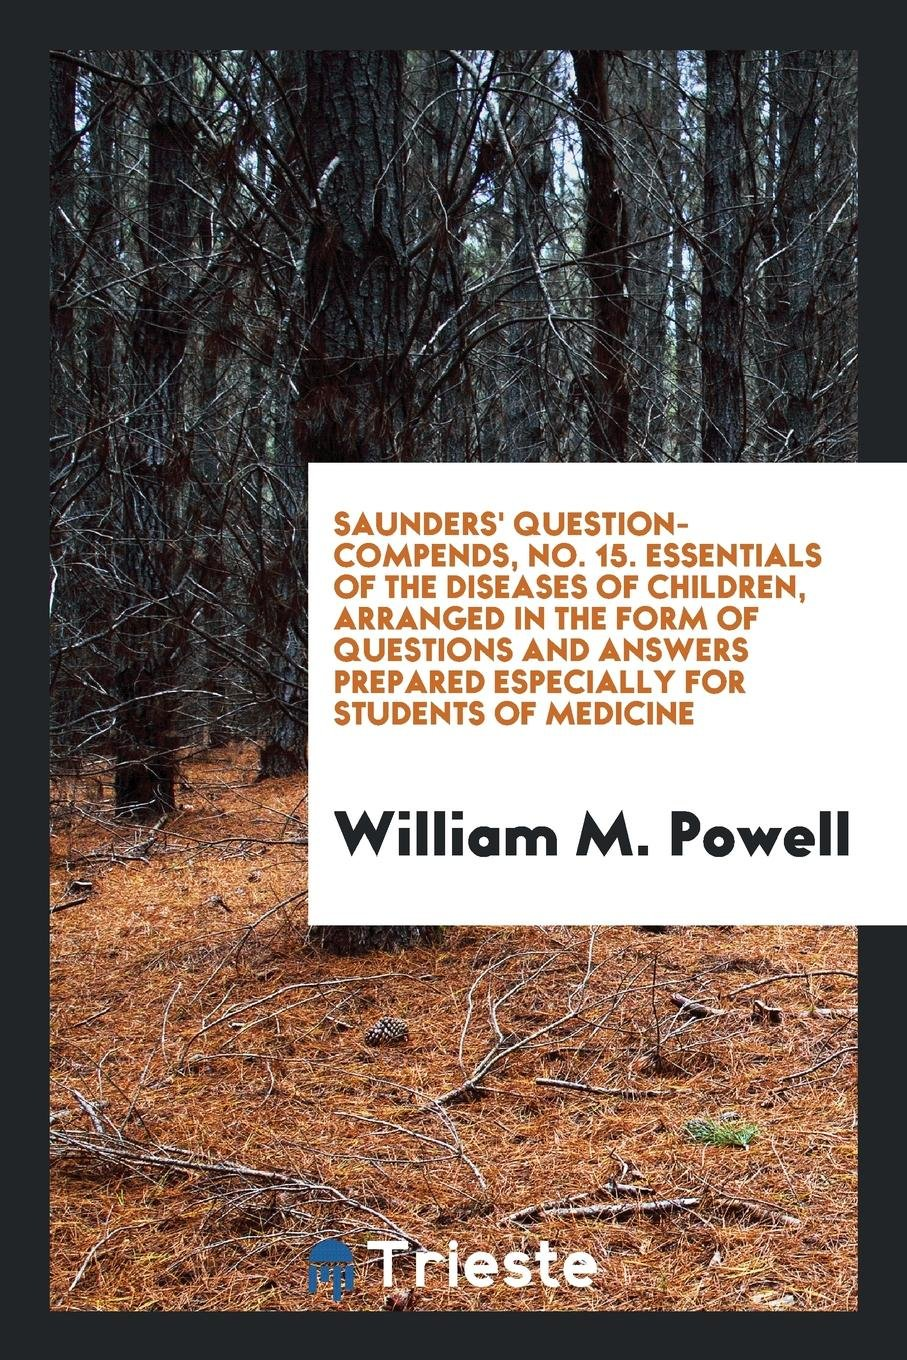 Download Saunders' Question-Compends, No. 15. Essentials of the Diseases of Children, Arranged in the Form of Questions and Answers Prepared Especially for Students of Medicine PDF